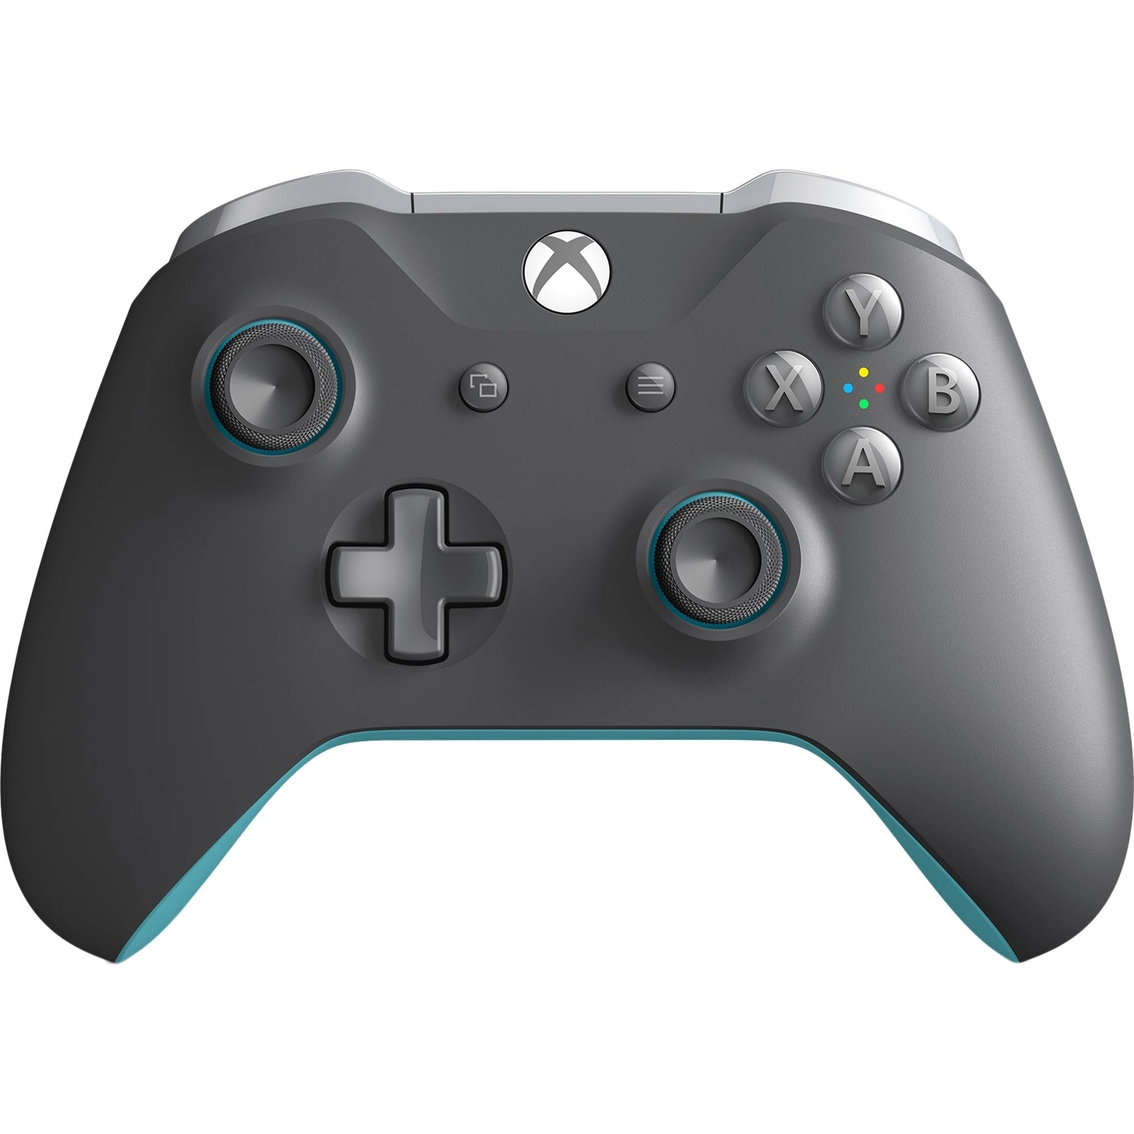 Xbox One Special Edition Controller | Xbox One Accessories | Electronics |  Shop The Exchange